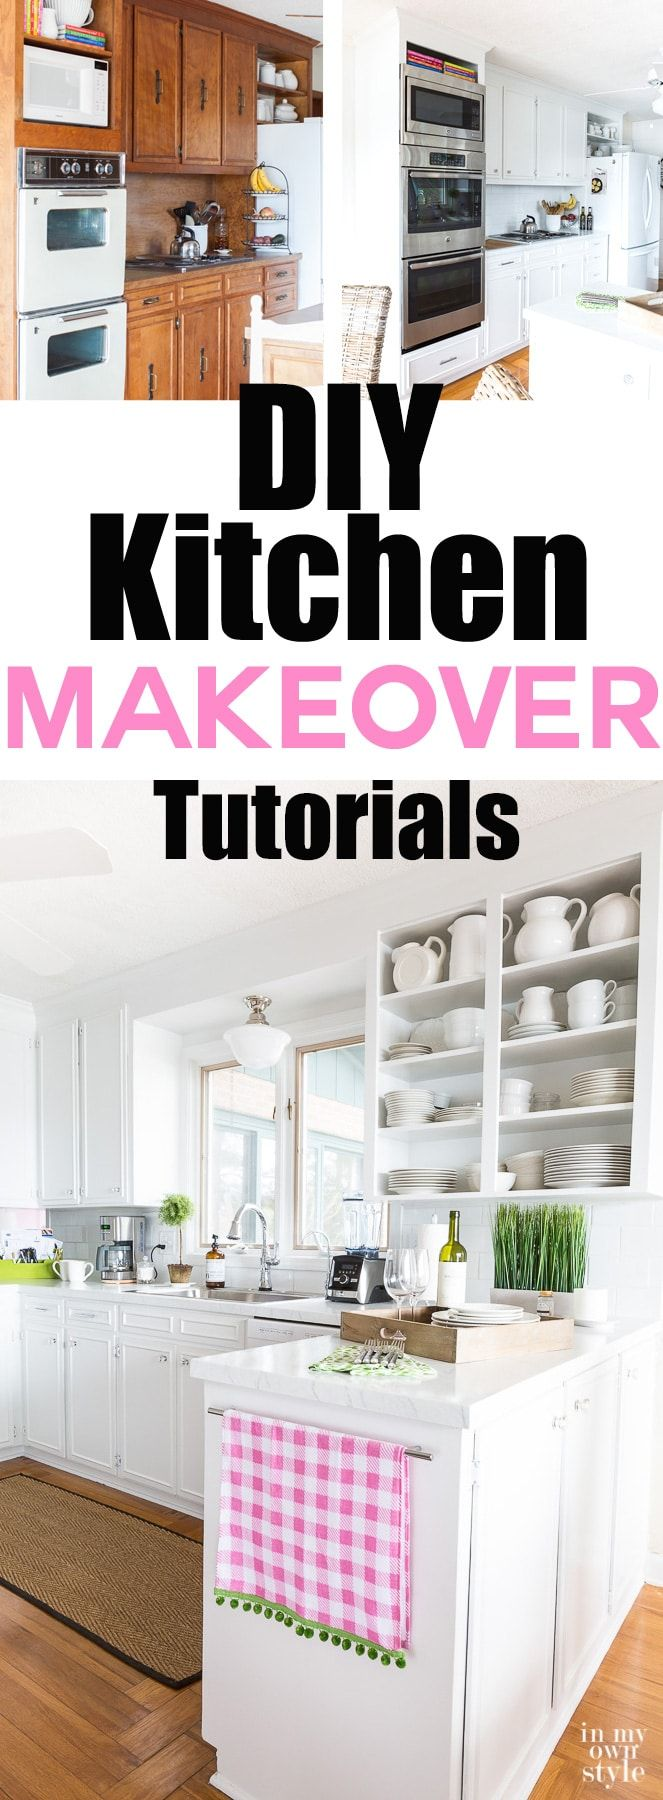 diy budget kitchen makeover  access all the tutorials tips and full budget breakdown to best 25  budget kitchen makeovers ideas on pinterest   budget      rh   pinterest com